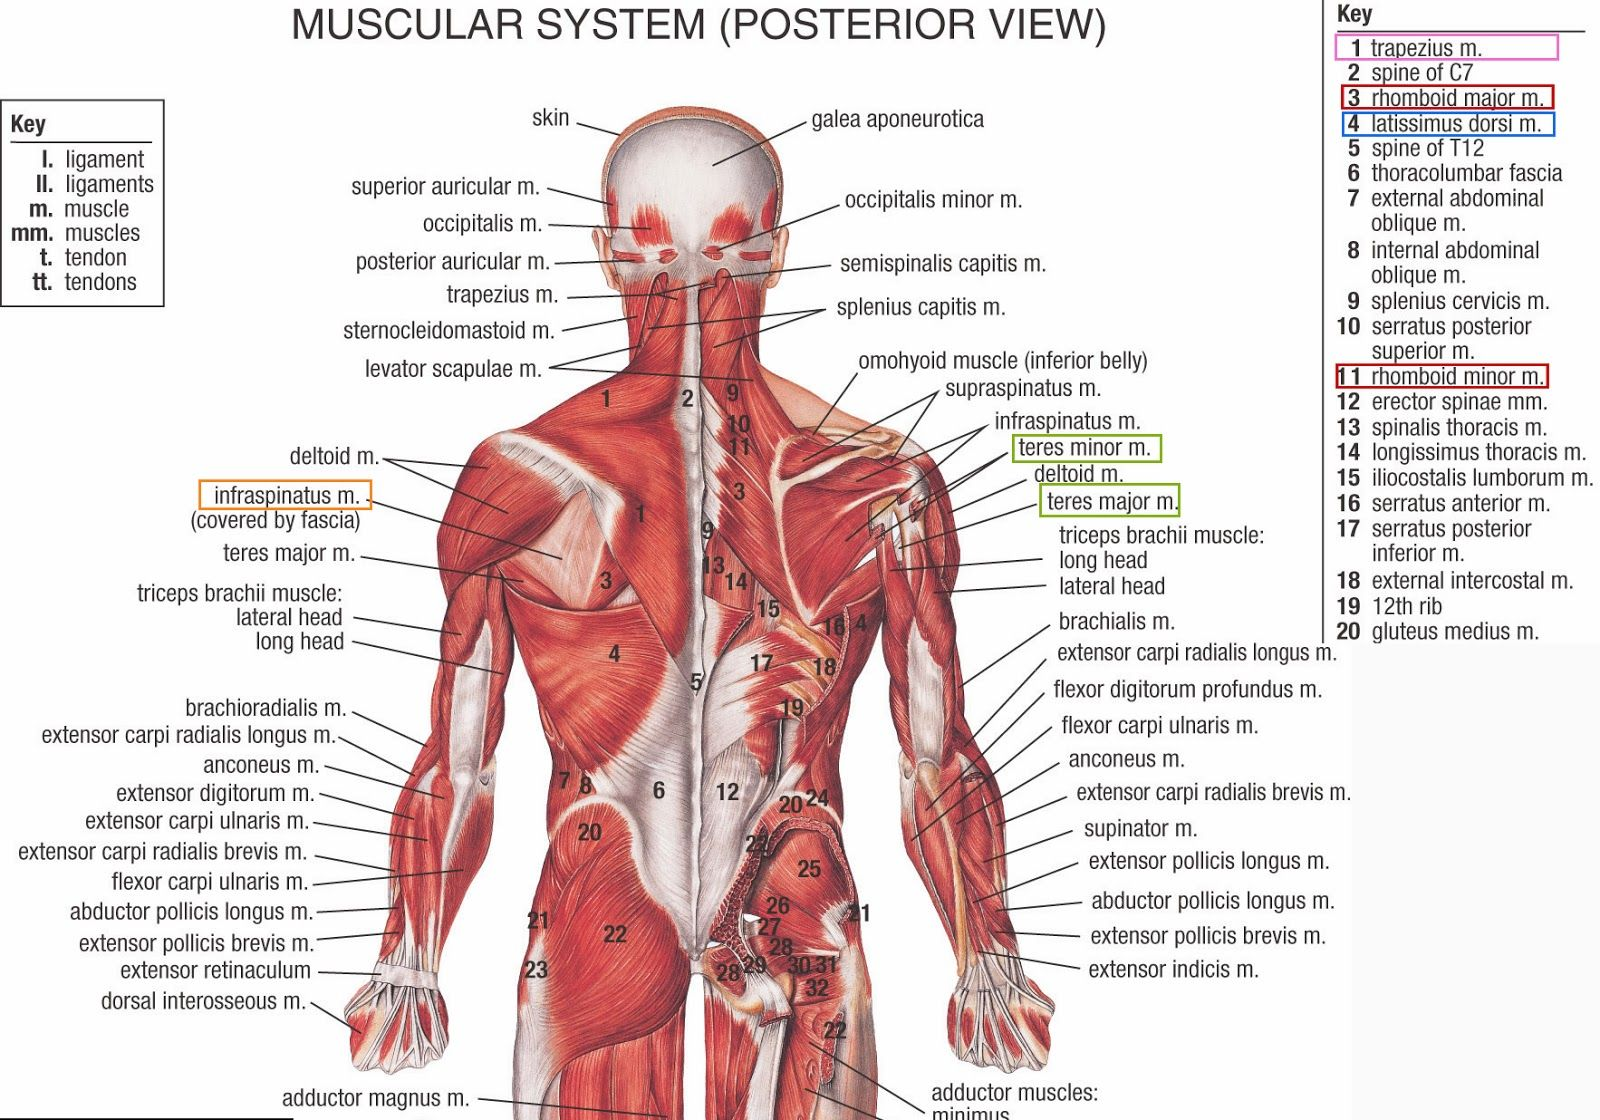 human animal anatomy and physiology diagrams lower back anatomy diagram of ligaments in lower back [ 1600 x 1120 Pixel ]